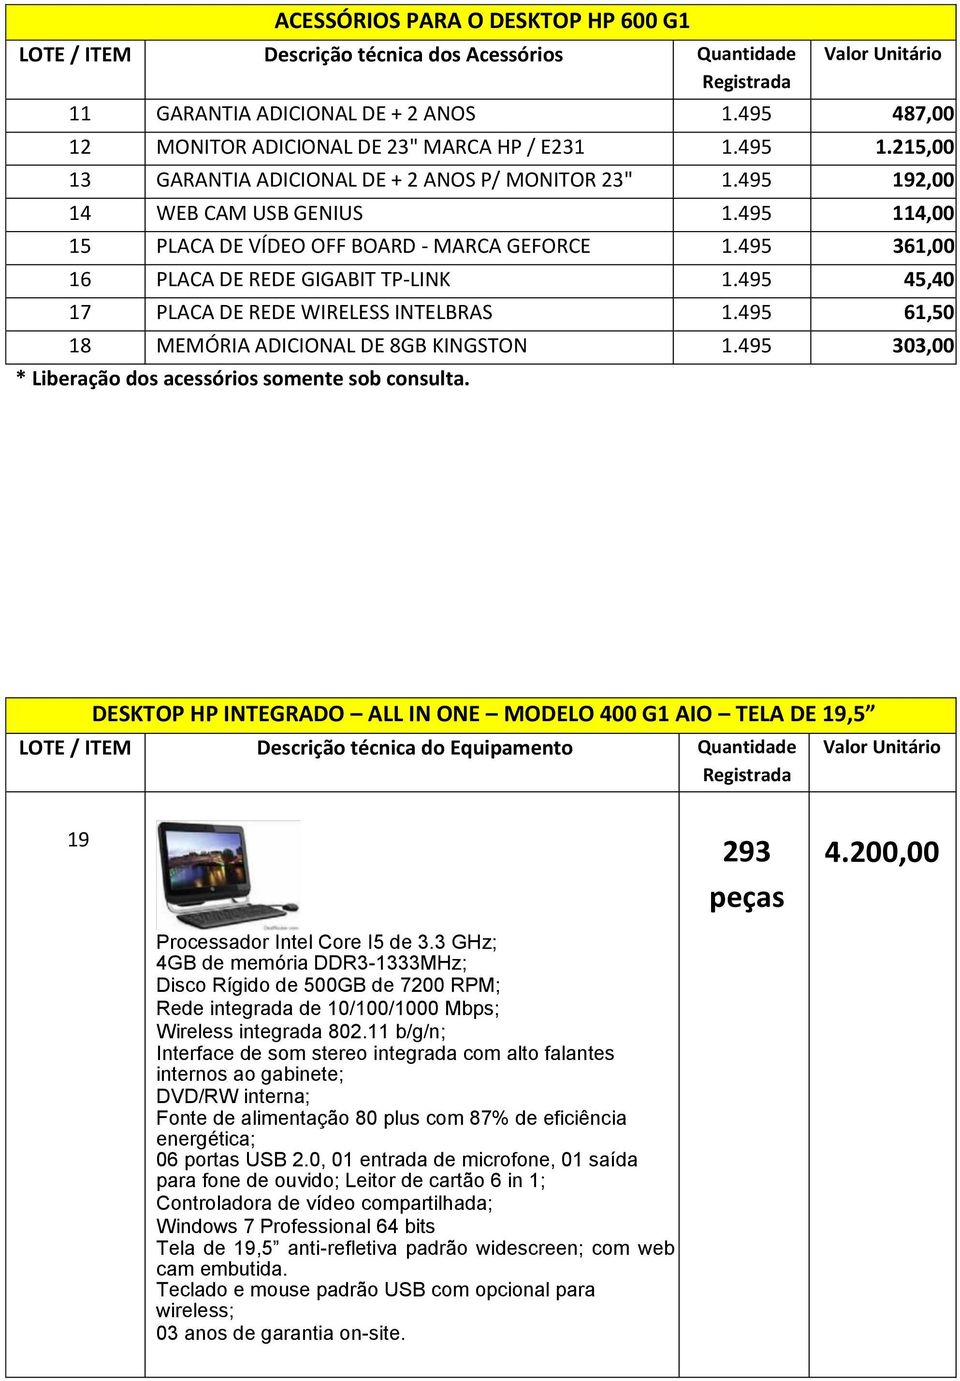 495 61,50 18 MEMÓRIA ADICIONAL DE 8GB KINGSTON 1.495 303,00 DESKTOP HP INTEGRADO ALL IN ONE MODELO 400 G1 AIO TELA DE 19,5 19 293 4.200,00 Processador Intel Core I5 de 3.